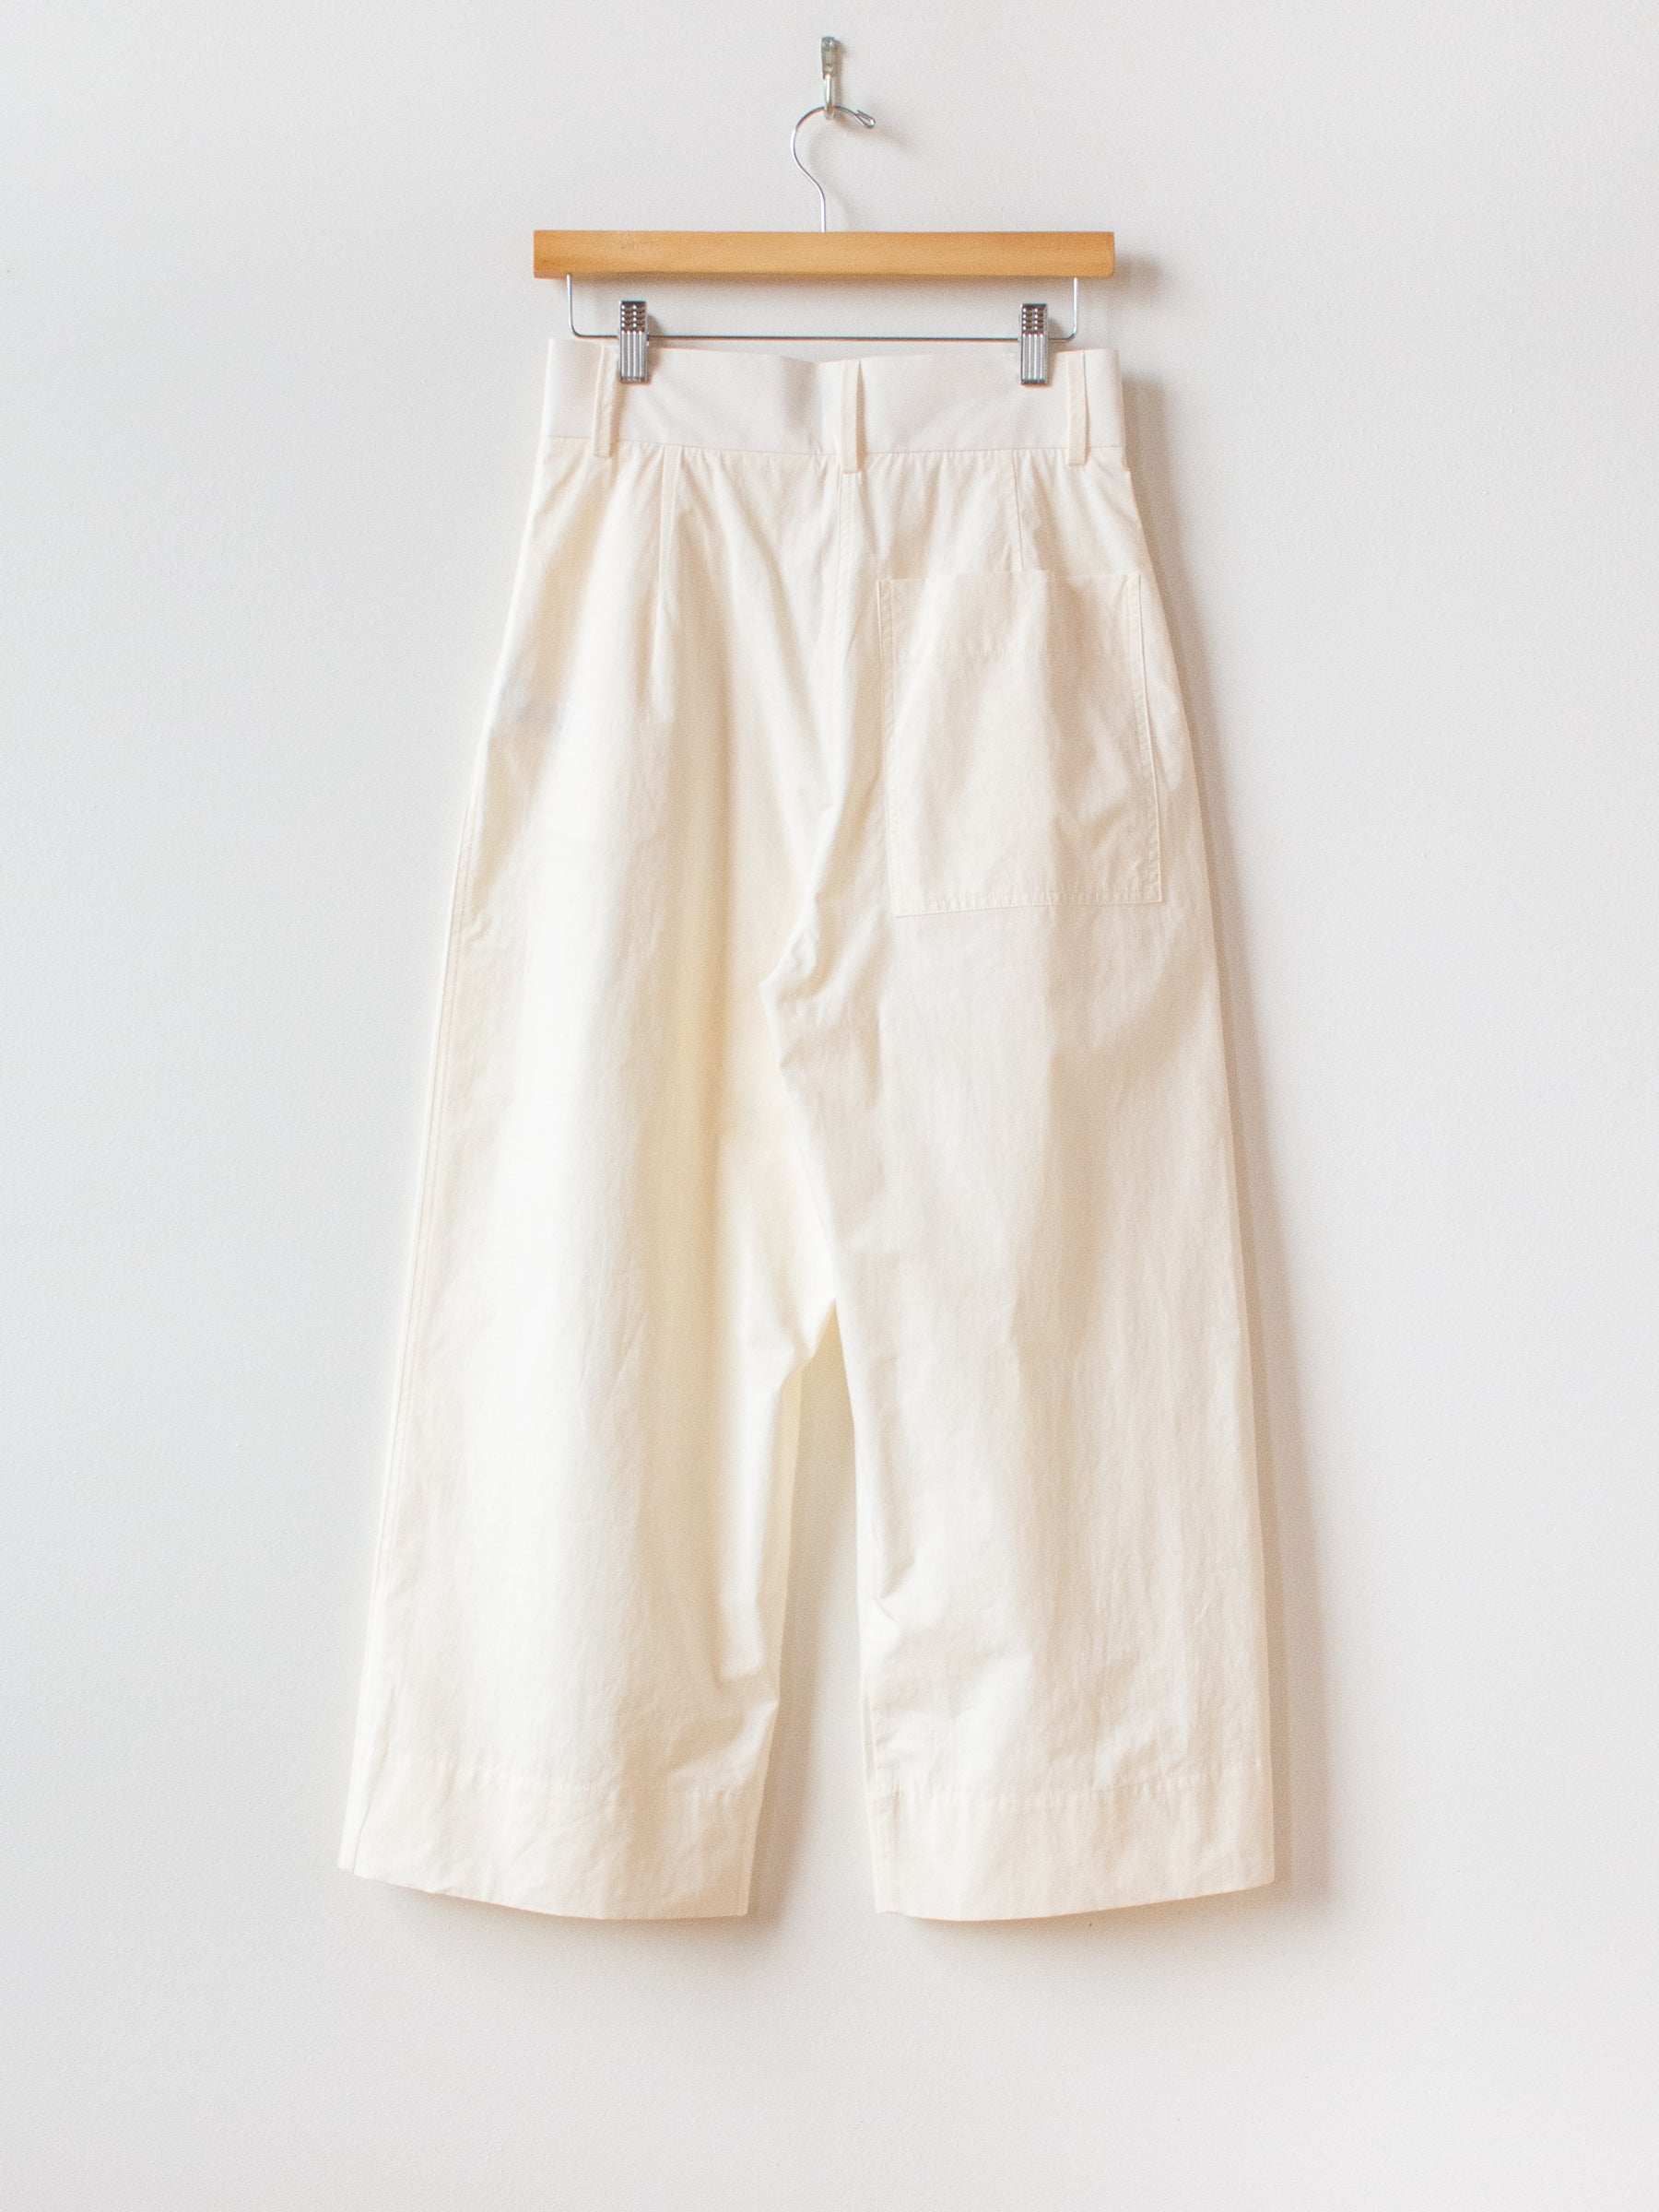 Greta Powder Cotton Pant - Milk